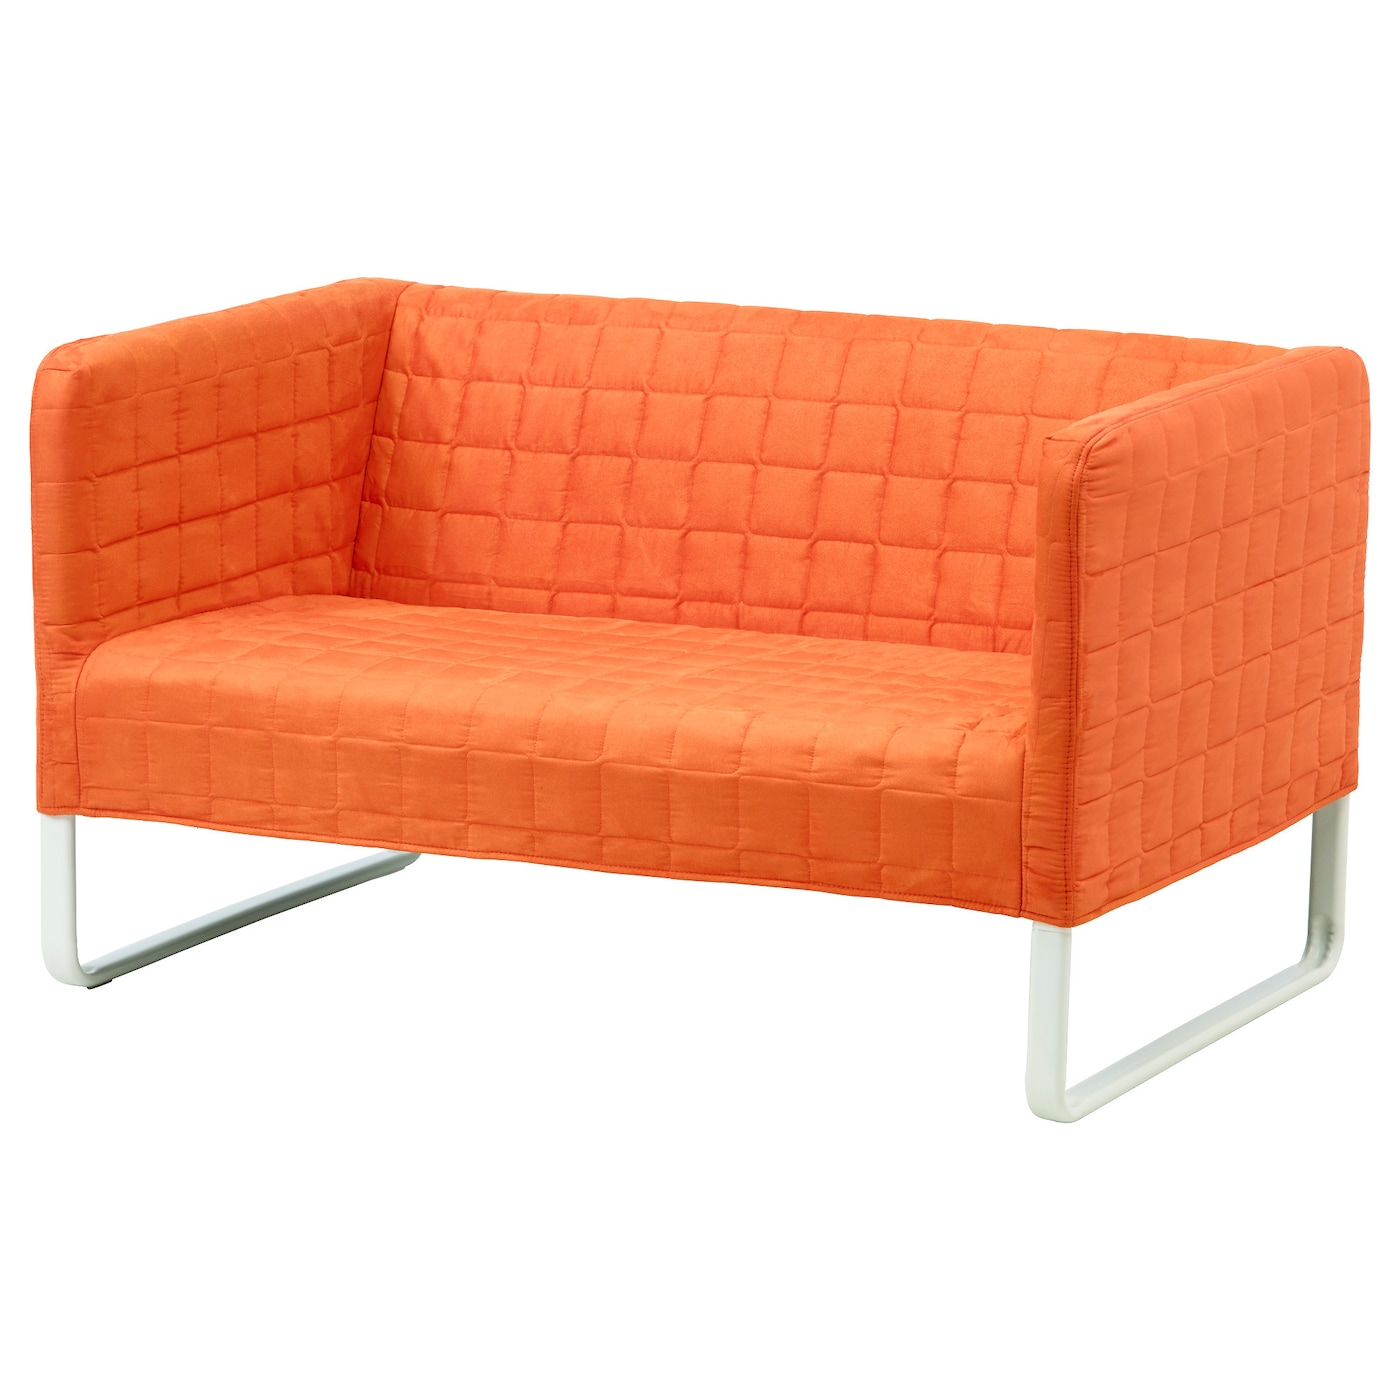 Knopparp 2 seat sofa orange ikea for Sofa orange